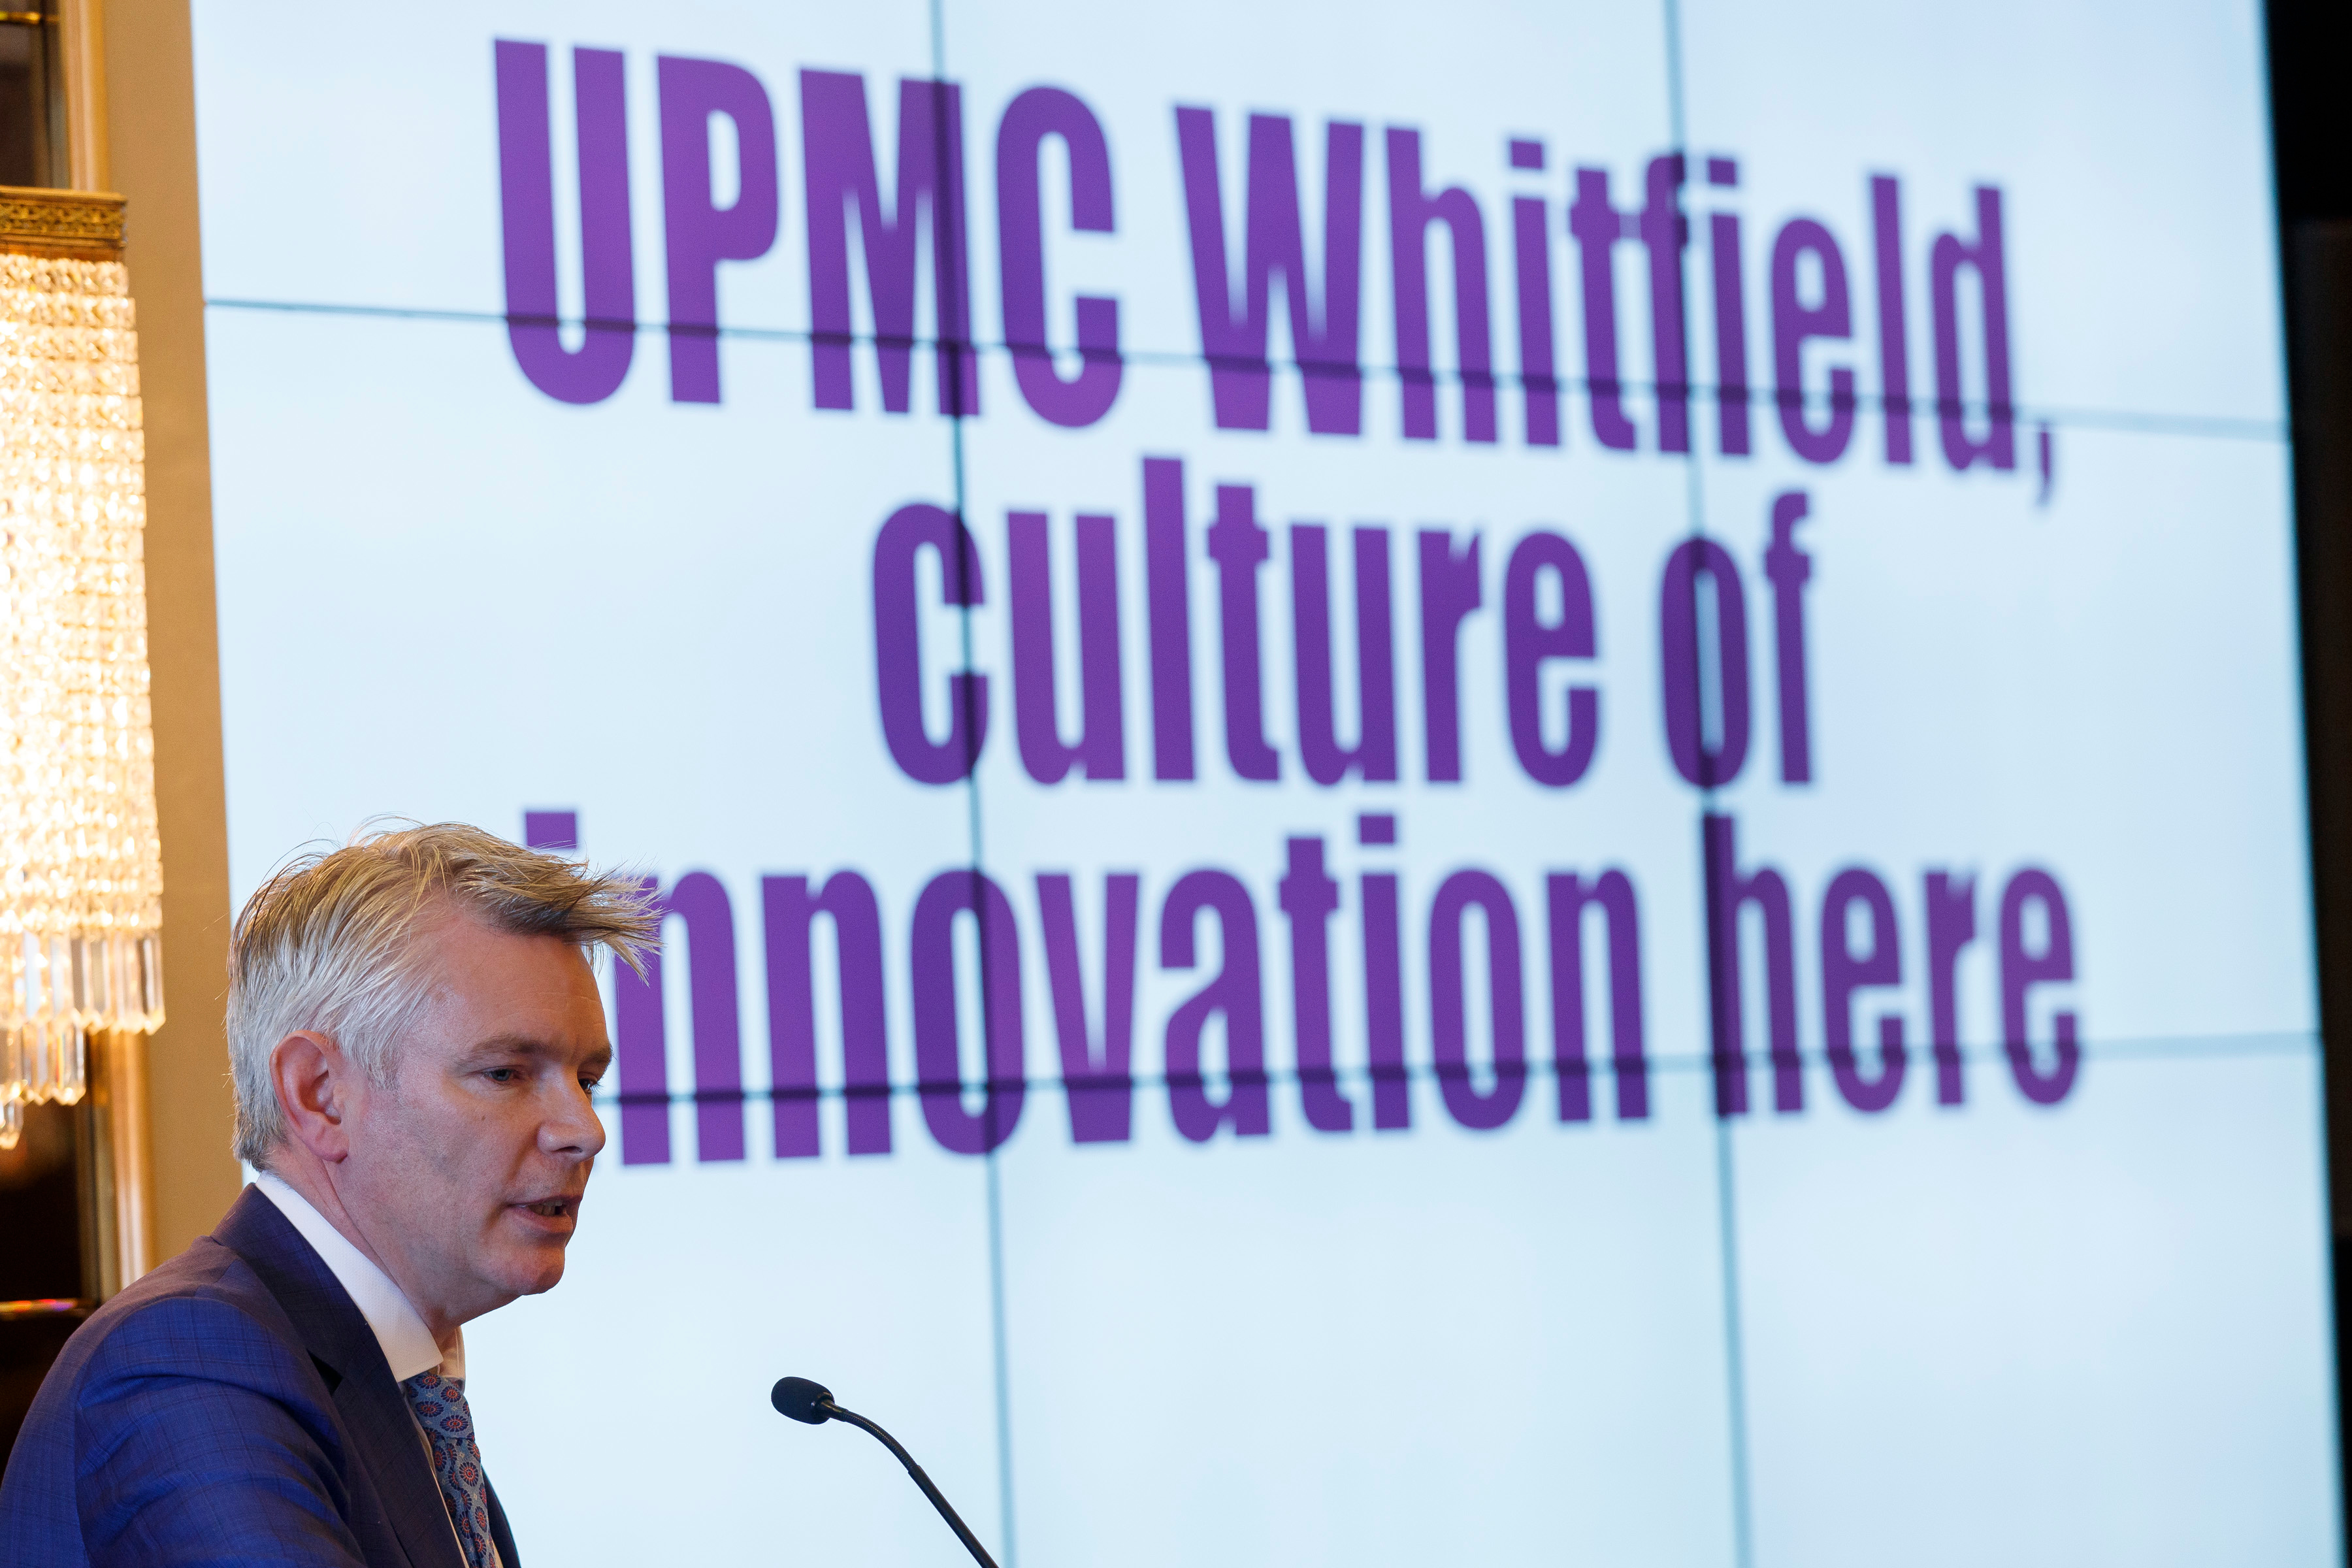 Pictured is David Beirne, CEO at UPMC Whitfield